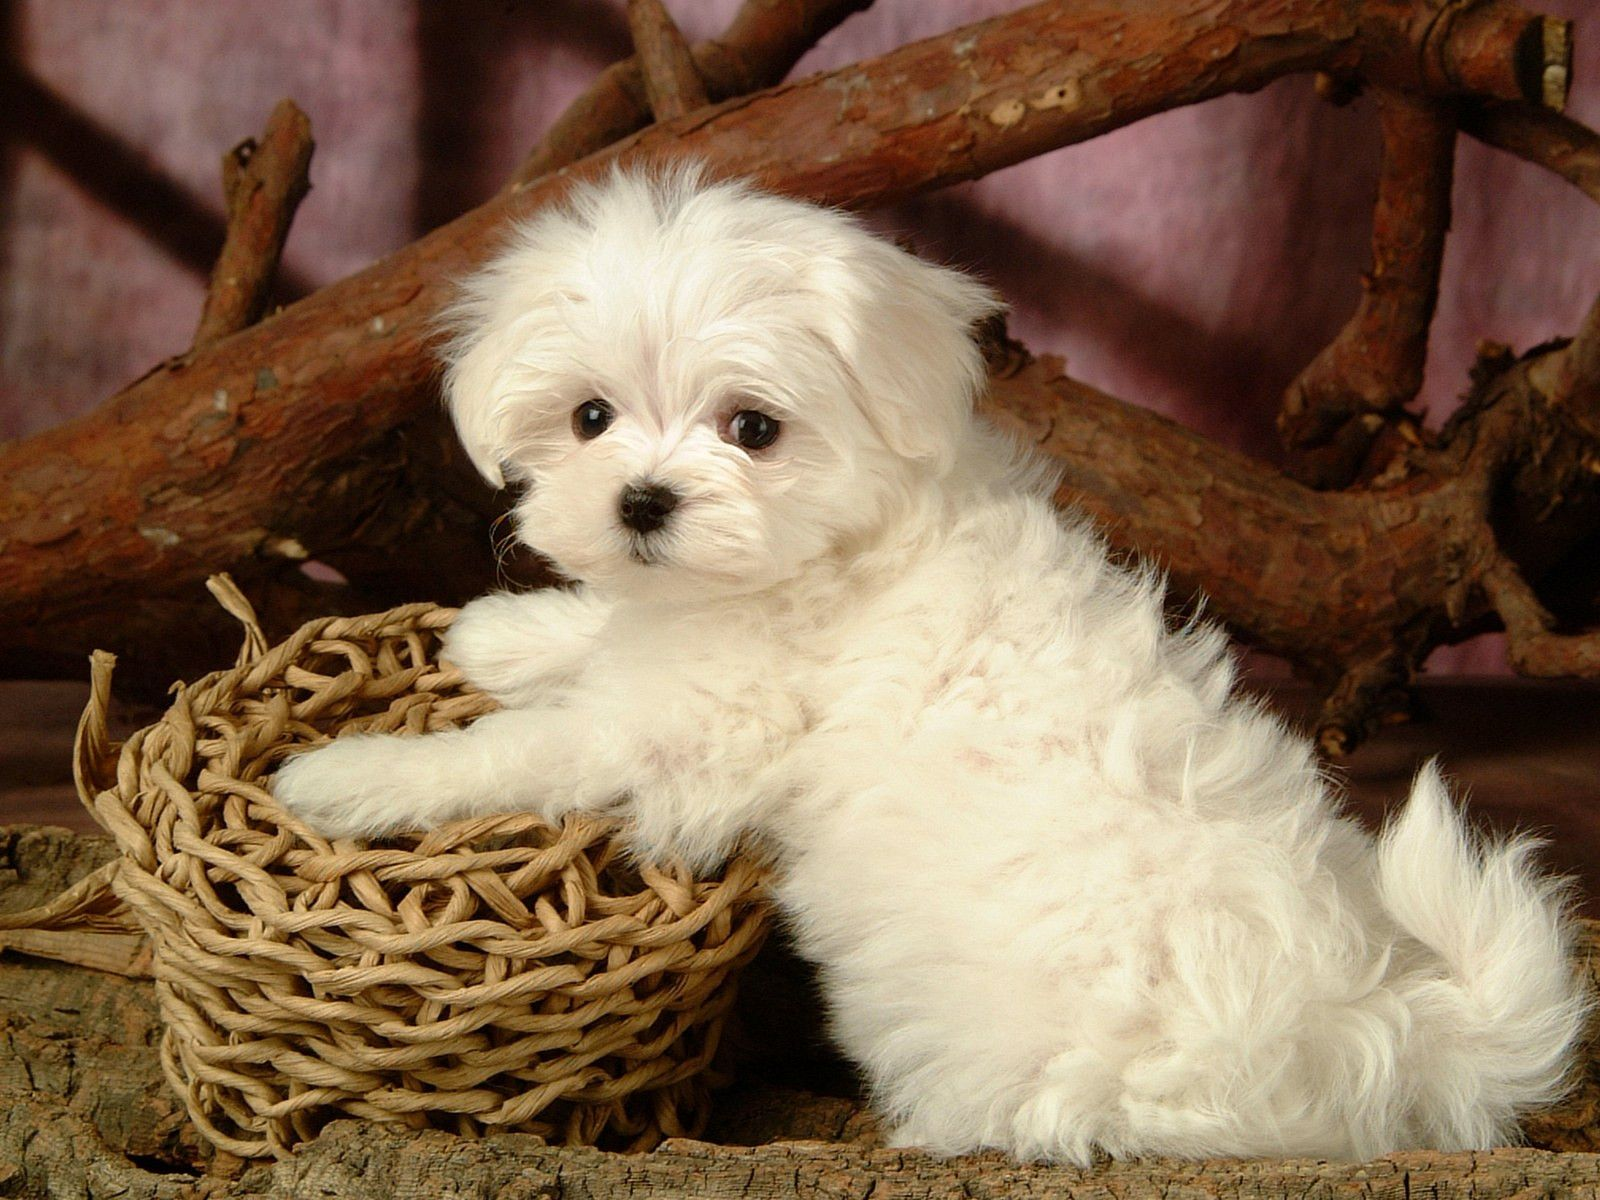 Maltese Puppies Wallpapers 53 Top Free Maltese Puppies Hd Wallpaper For Laptop Maltese Puppy Maltese Dogs Dogs And Puppies